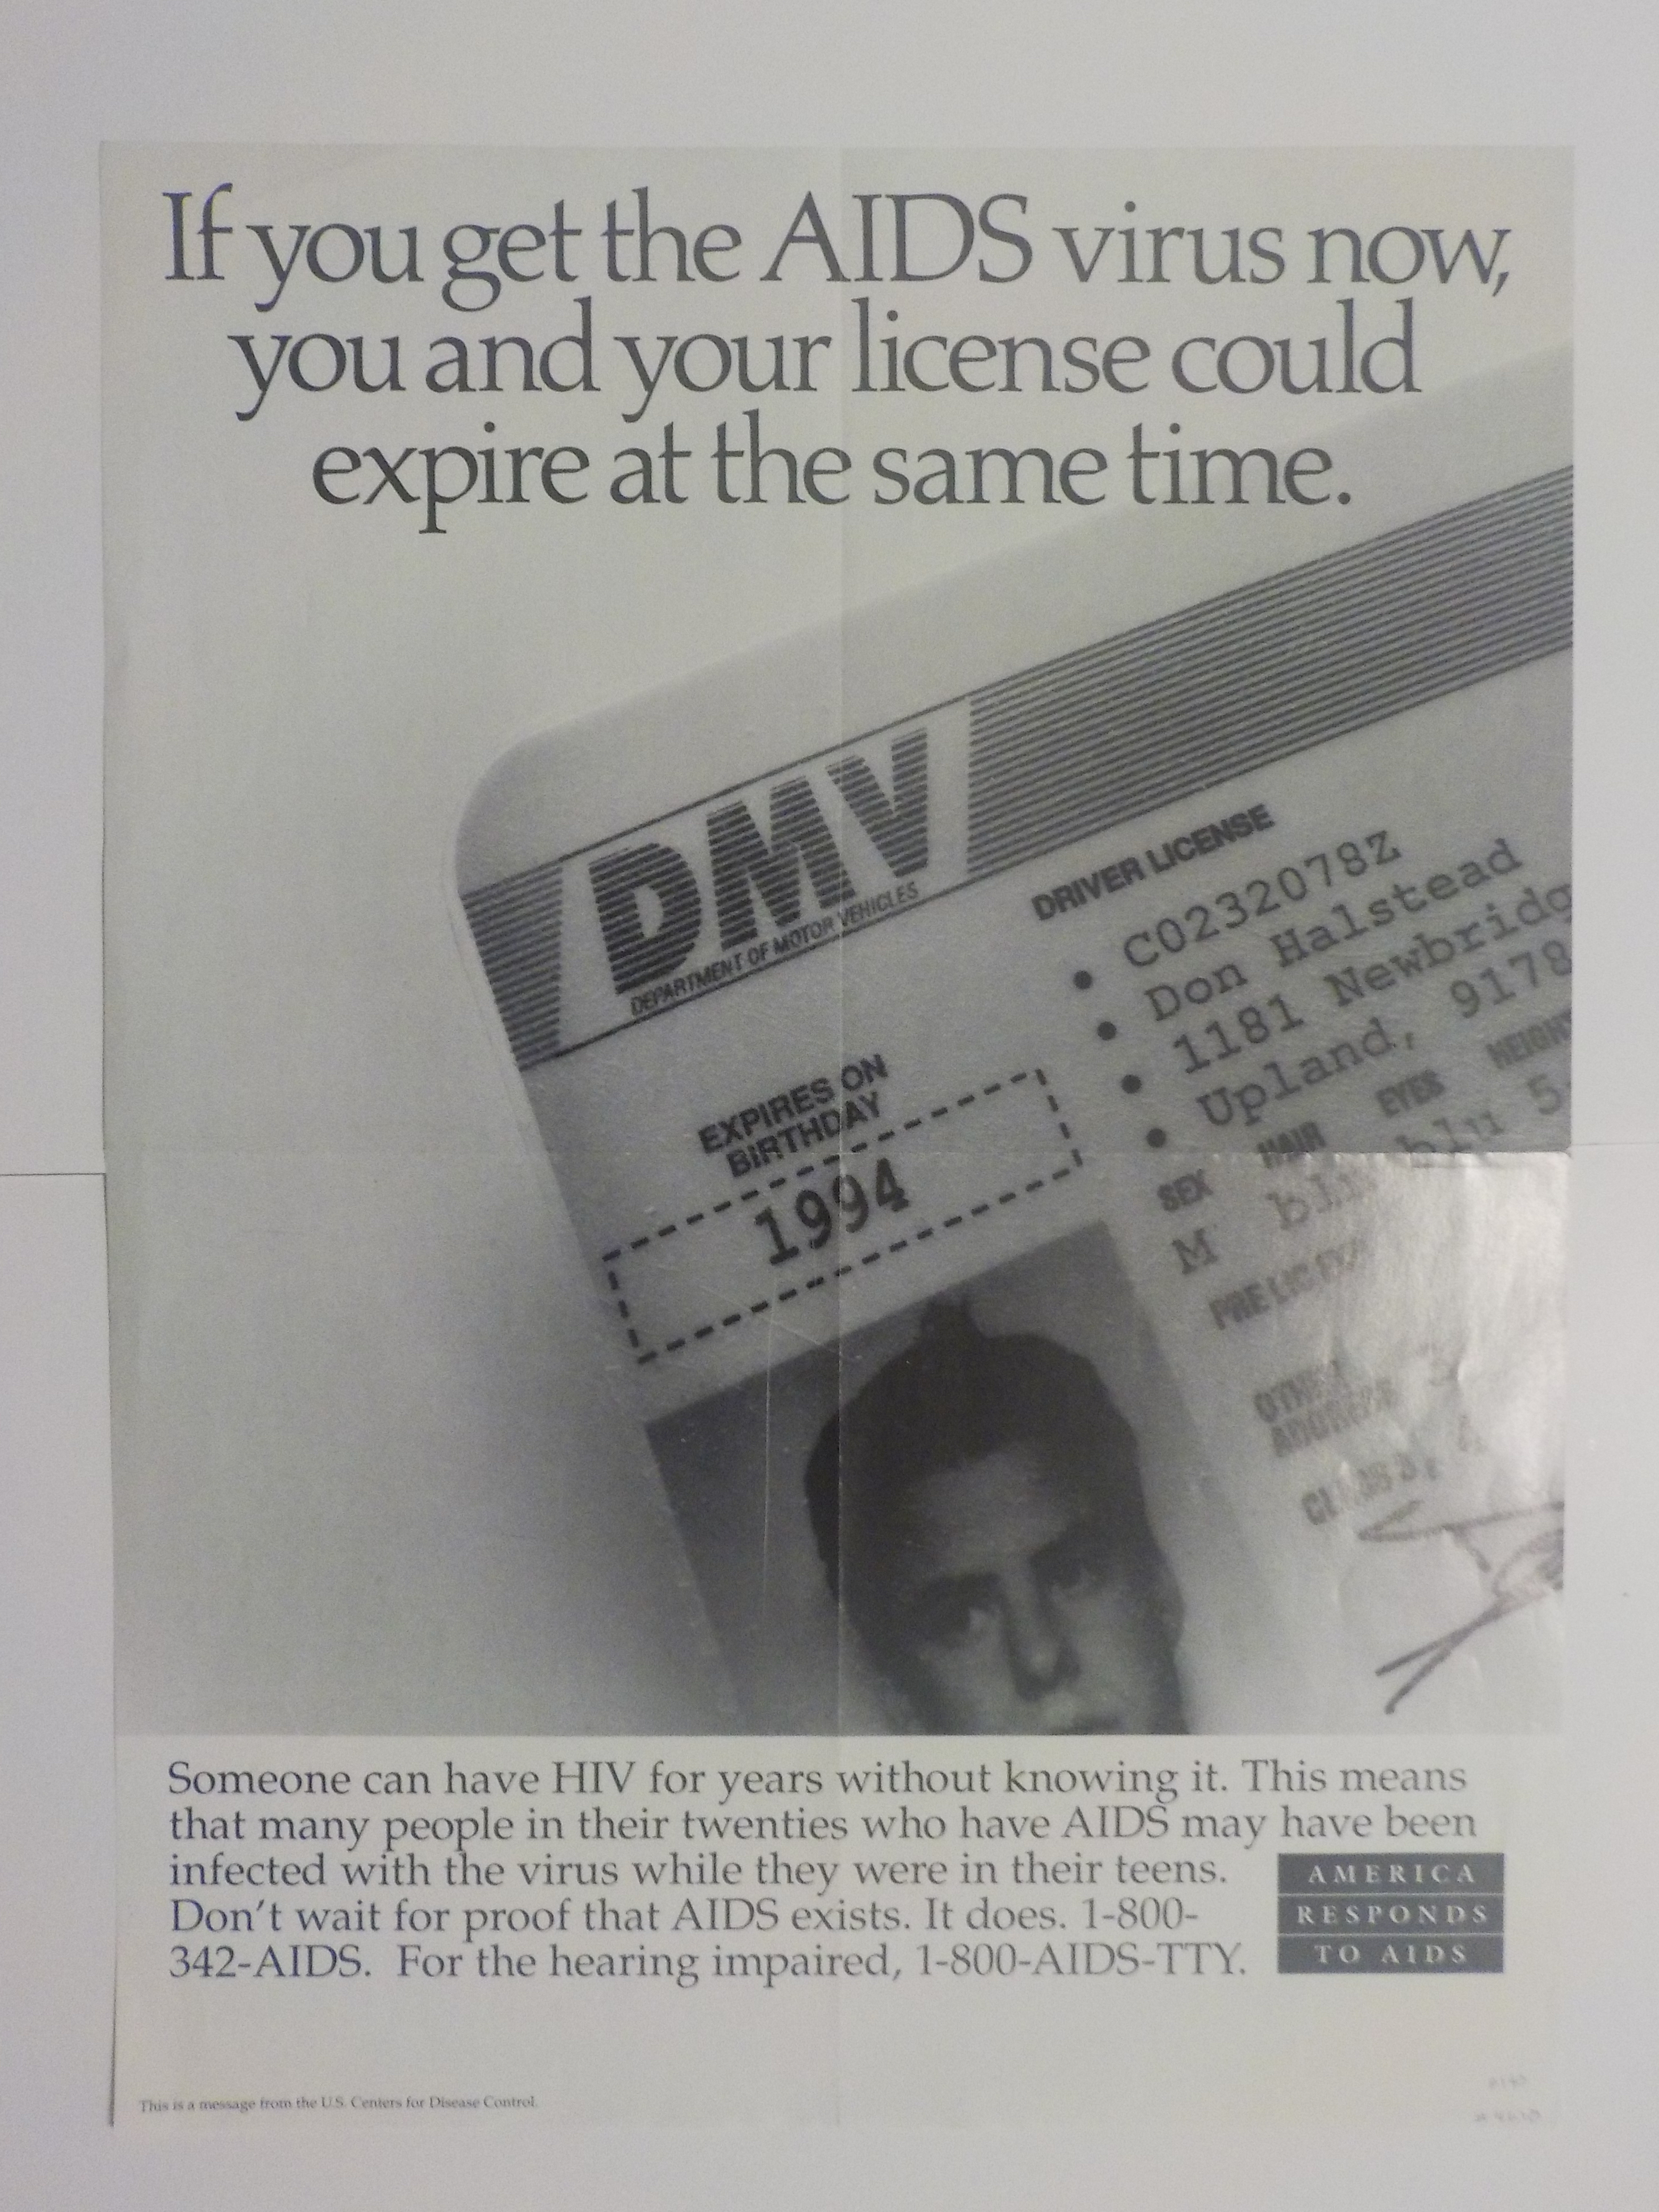 If you get the AIDS virus now, you and your license could expire at the same time